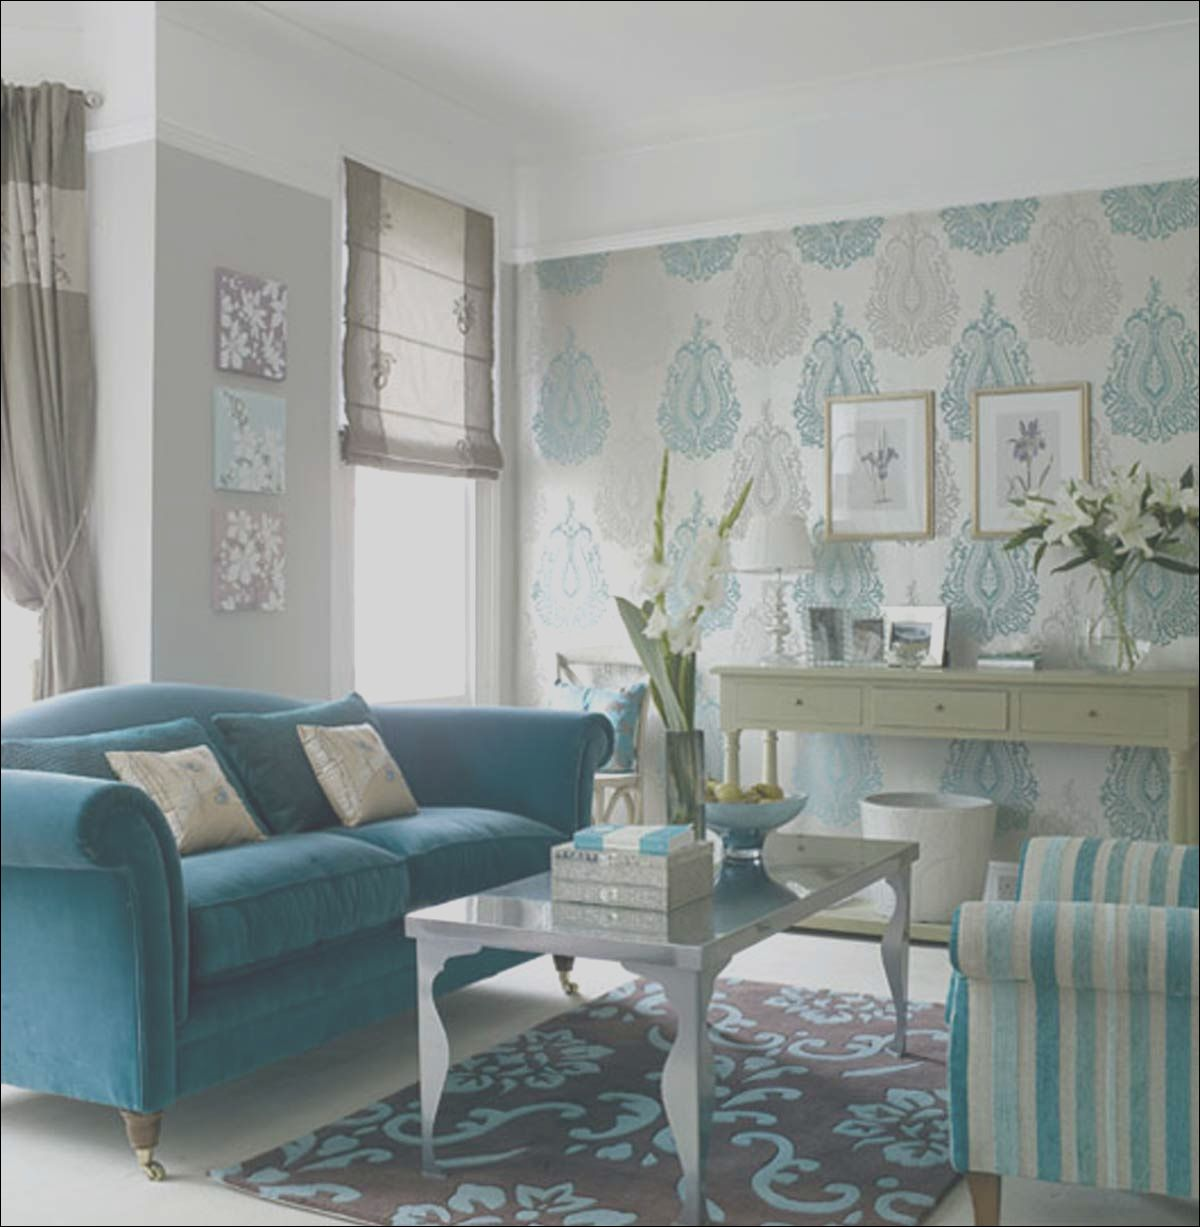 12 Clean Wallpaper Ideas For Small Living Room Image In